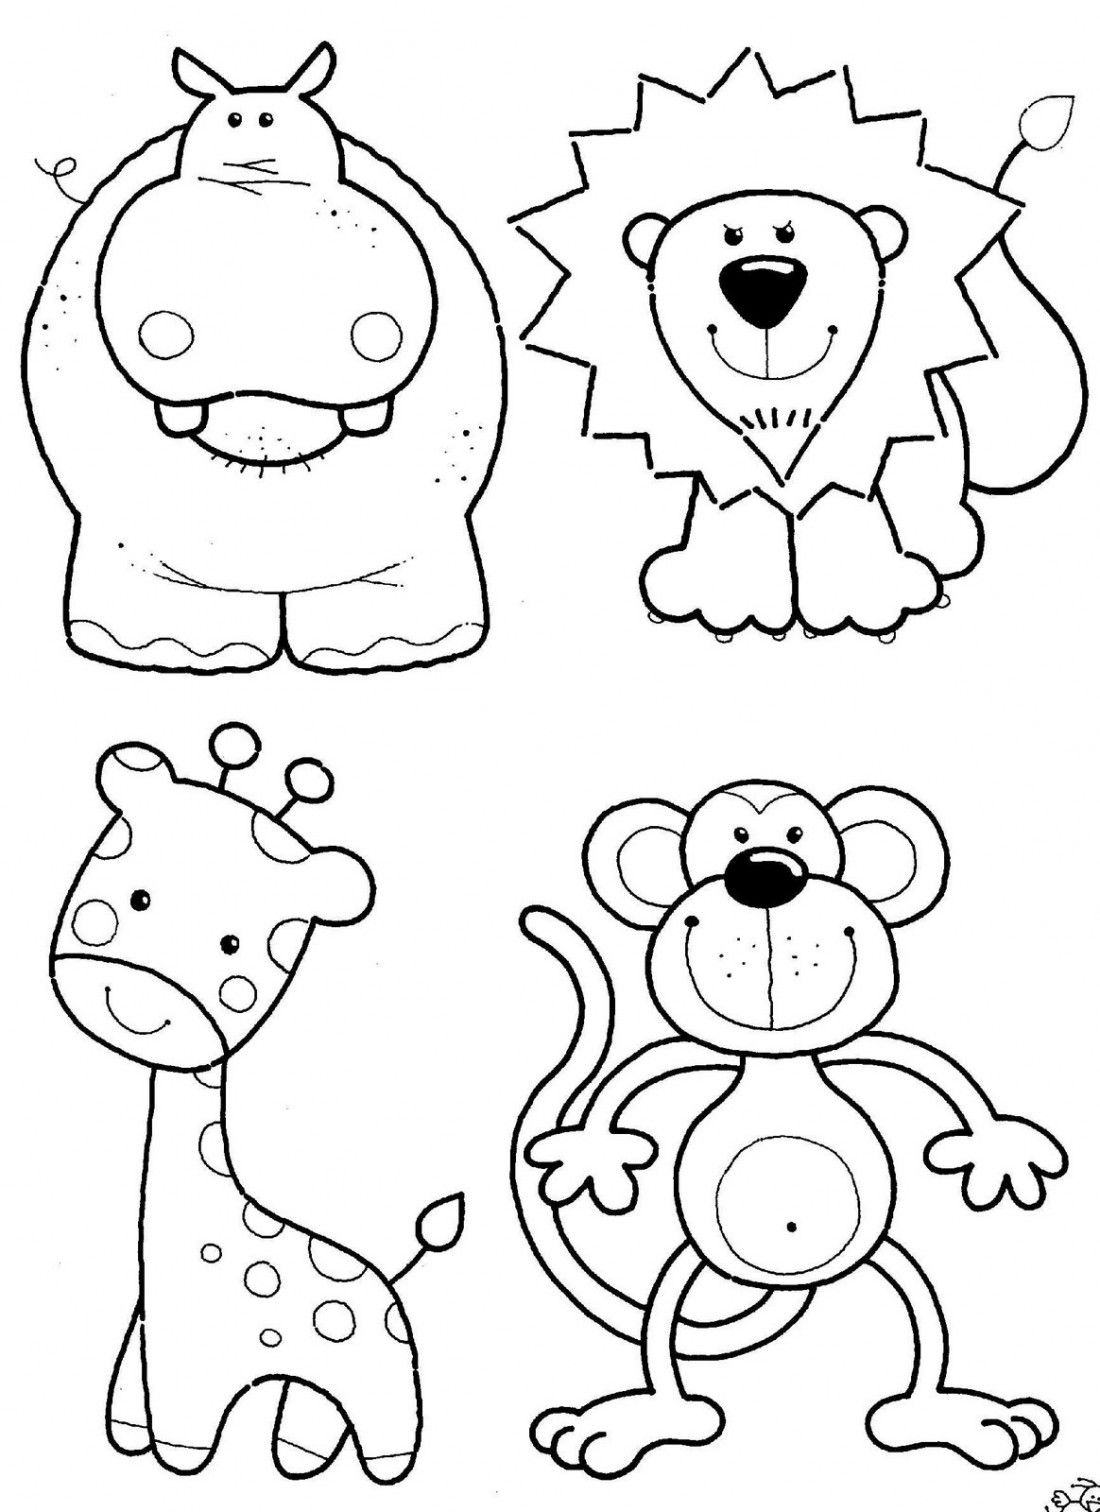 Free Animal Coloring Pages Kids. I'd color or paint these